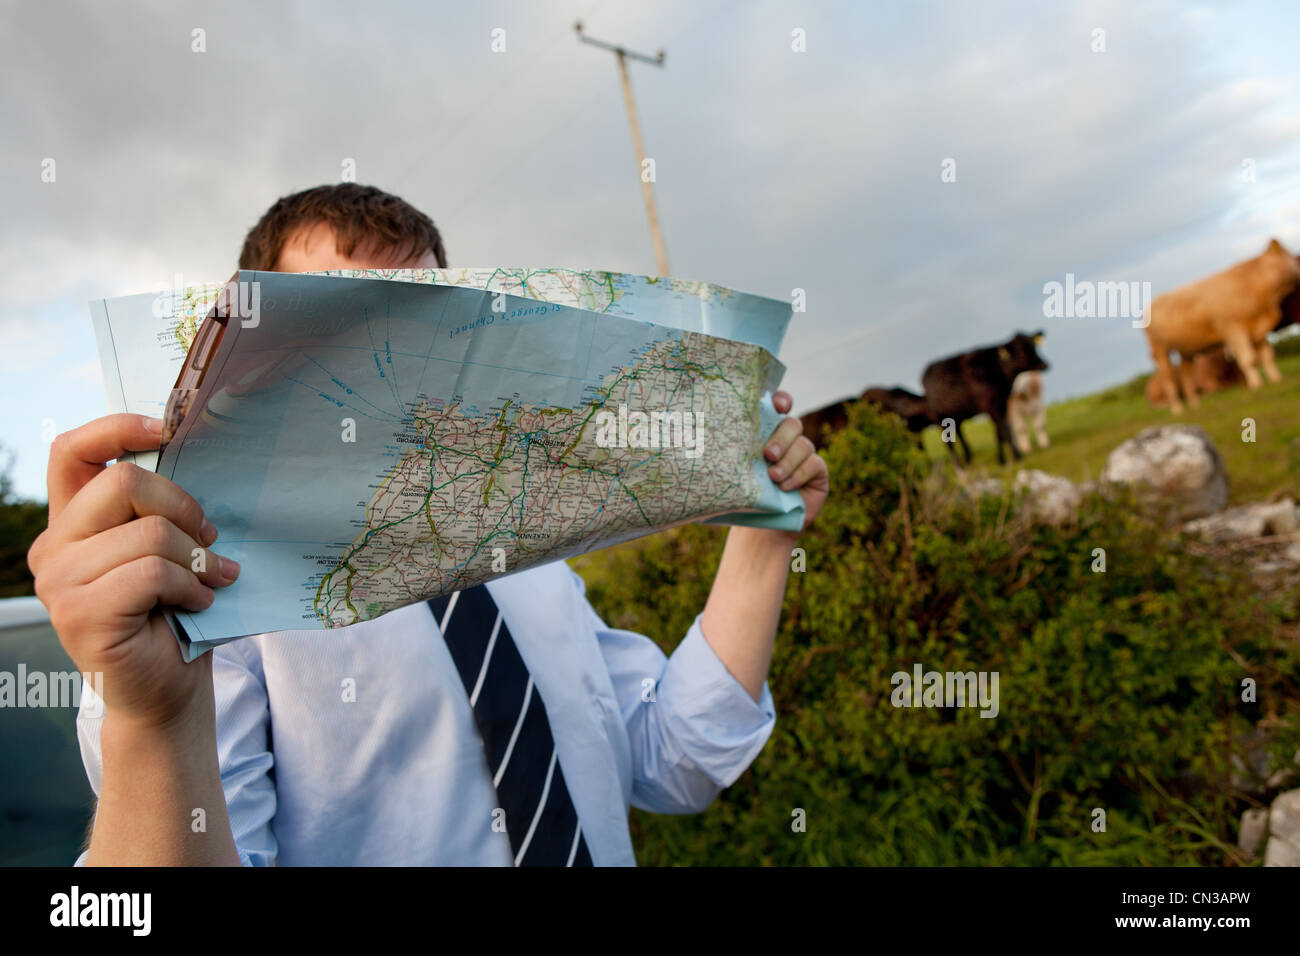 Businessman reading map in countryside Photo Stock